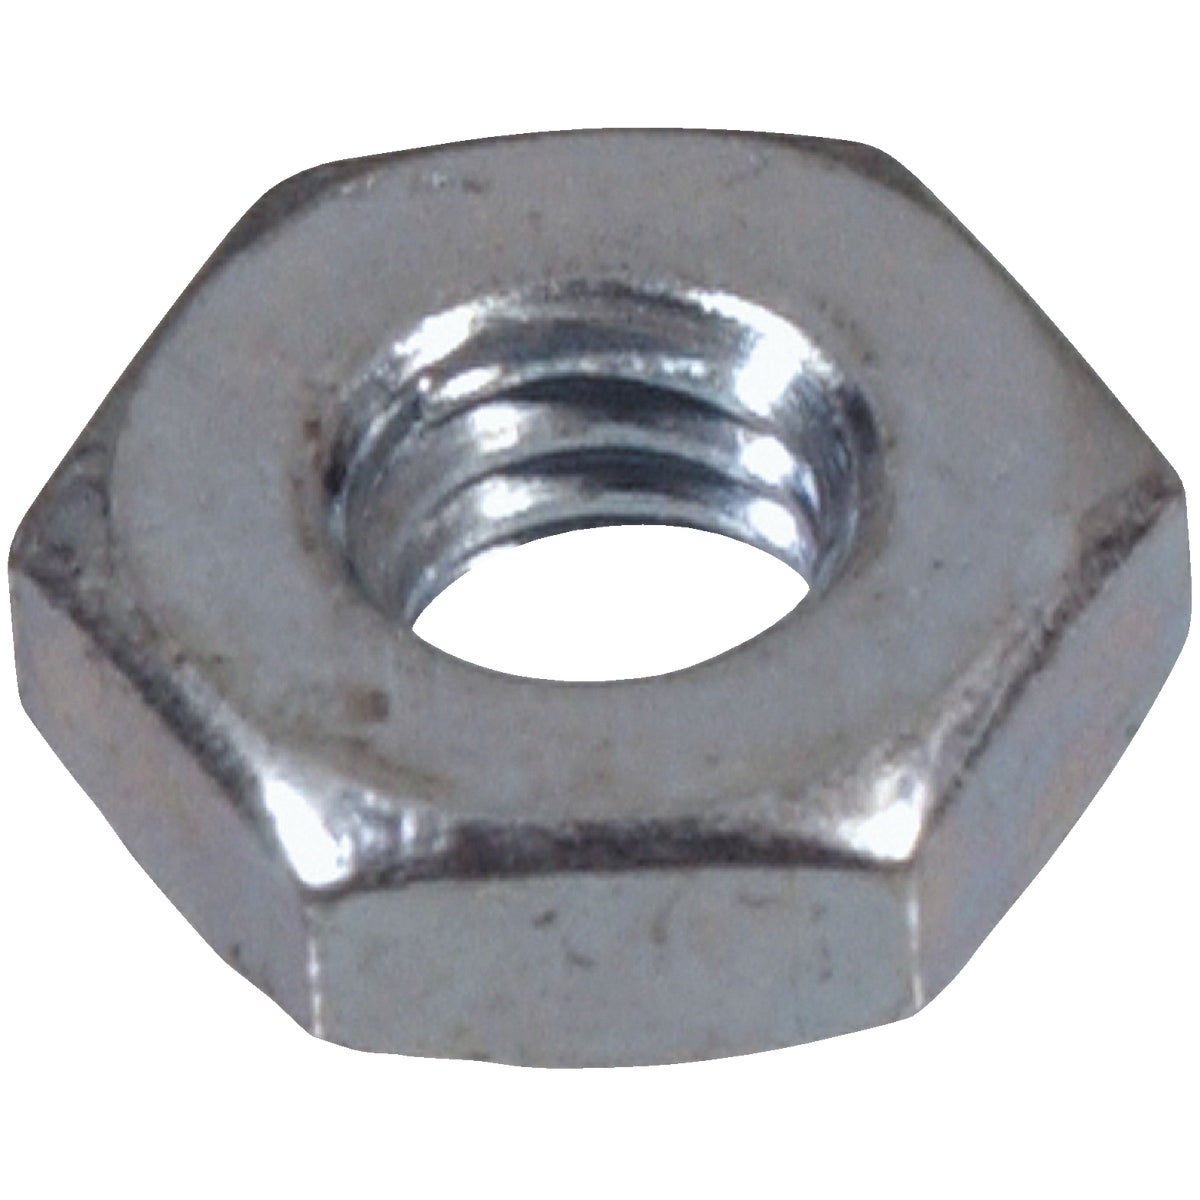 8-32 HEX MACH SCREW NUT - 140018 by Hillman Fastener